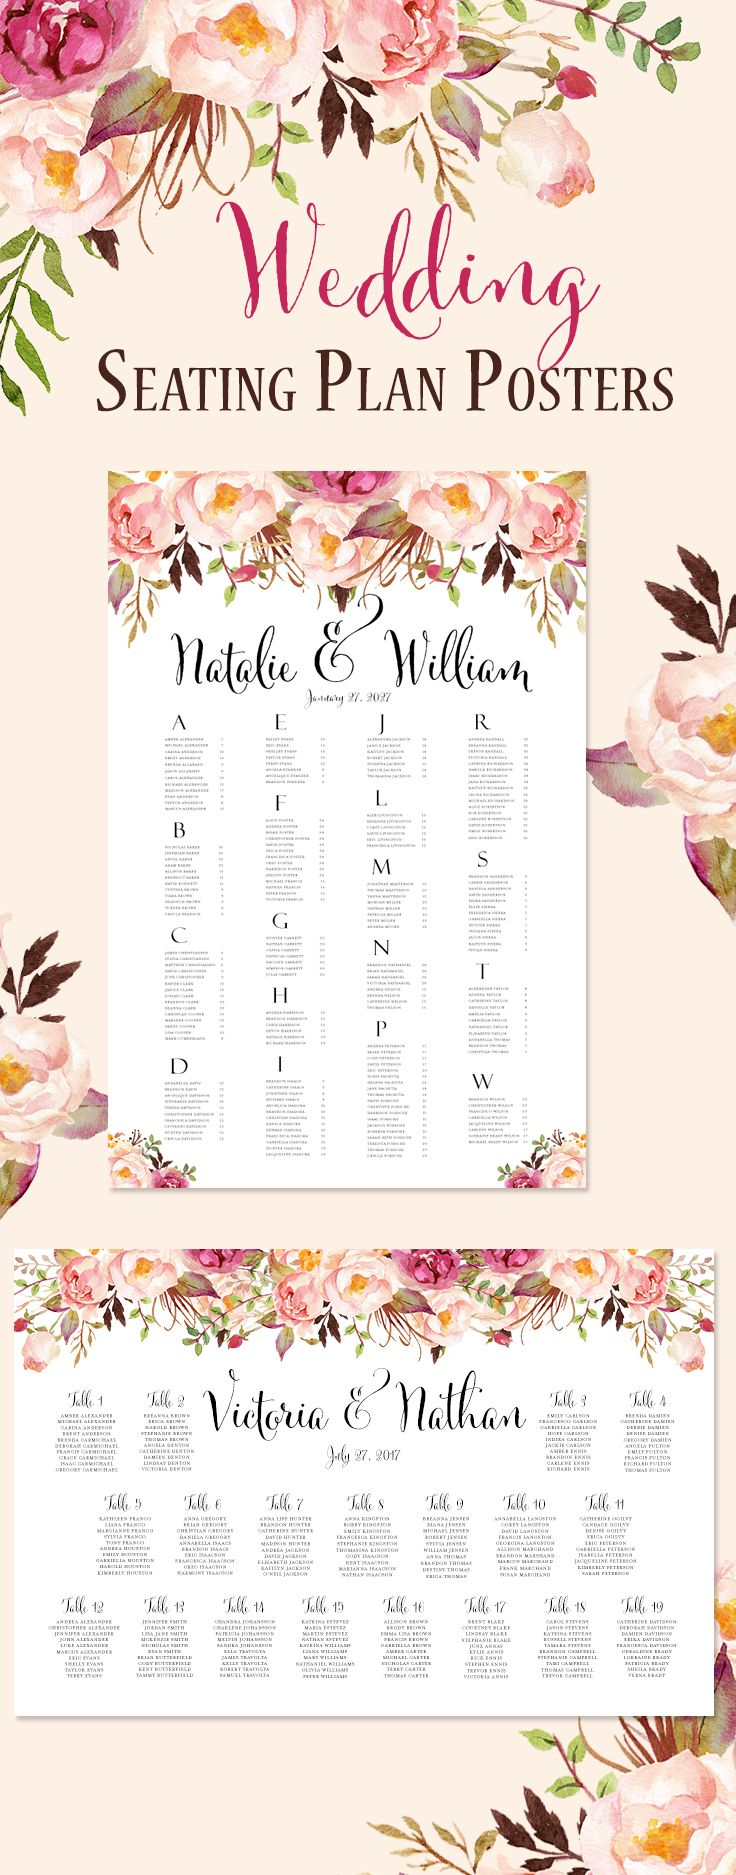 Reception Seating Chart Posters Print Ready, Floral Seating Plan, Romantic Blossoms.